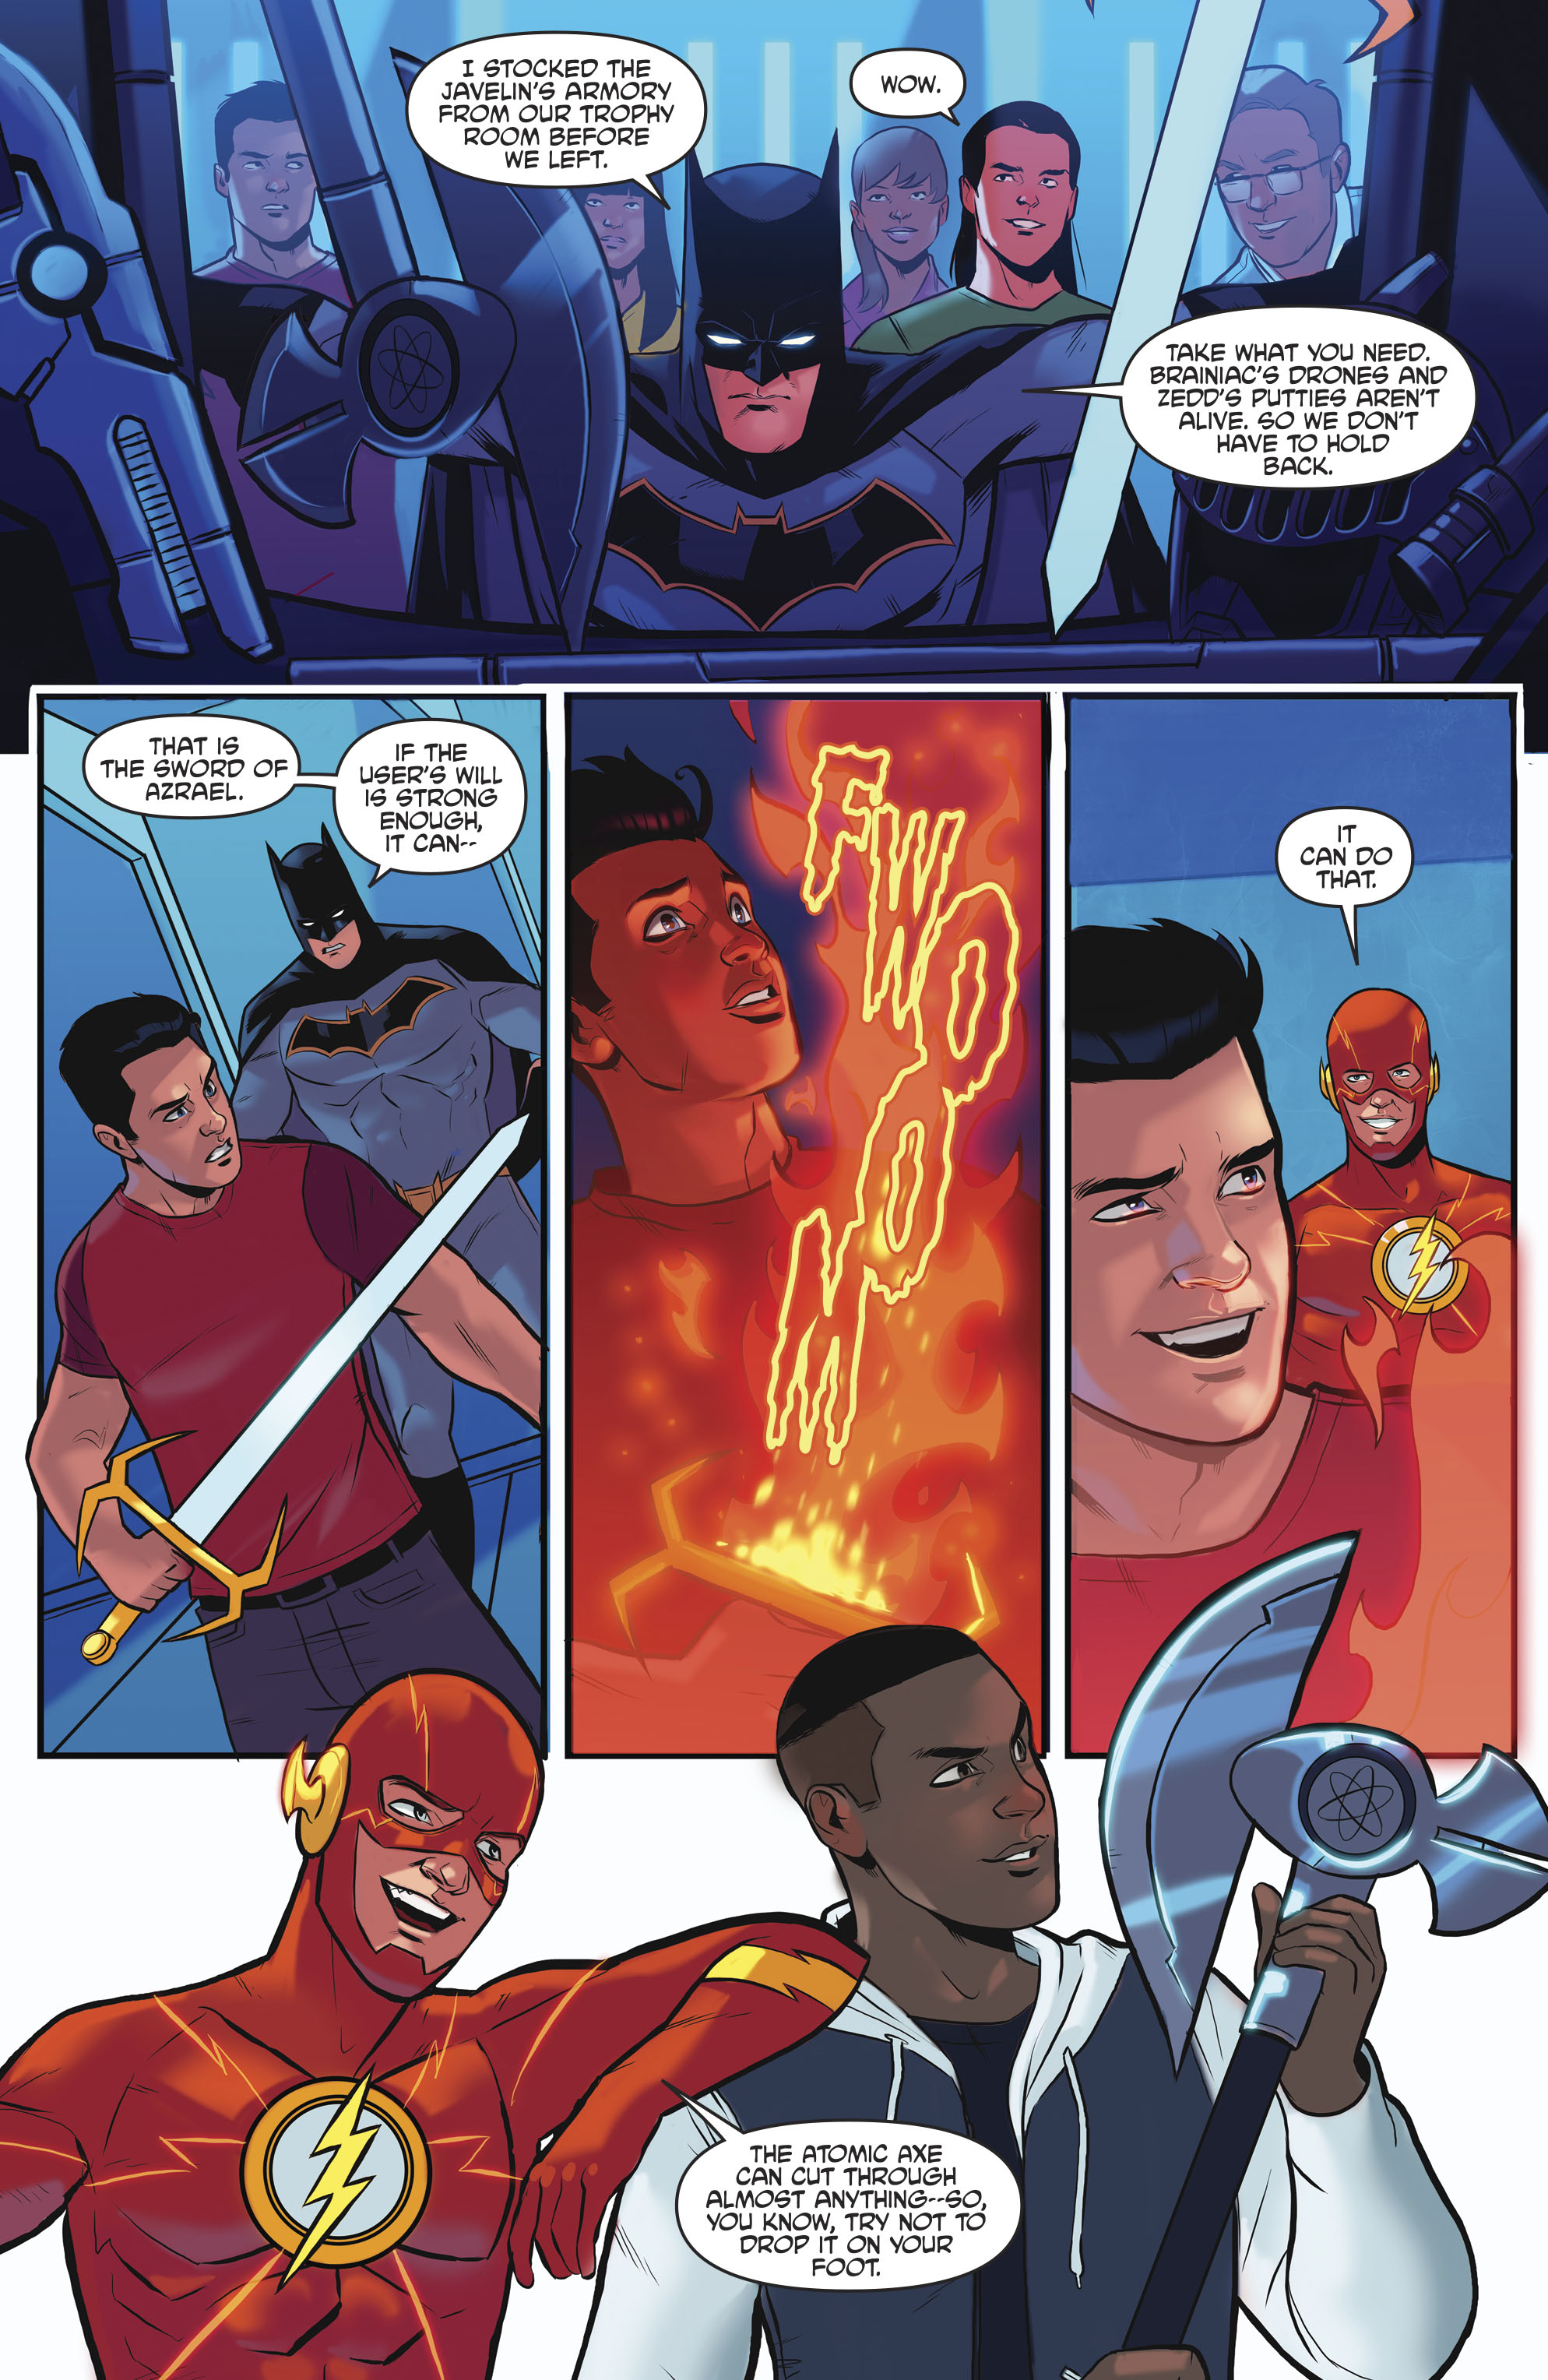 Read online Justice League/Mighty Morphin' Power Rangers comic -  Issue #4 - 16